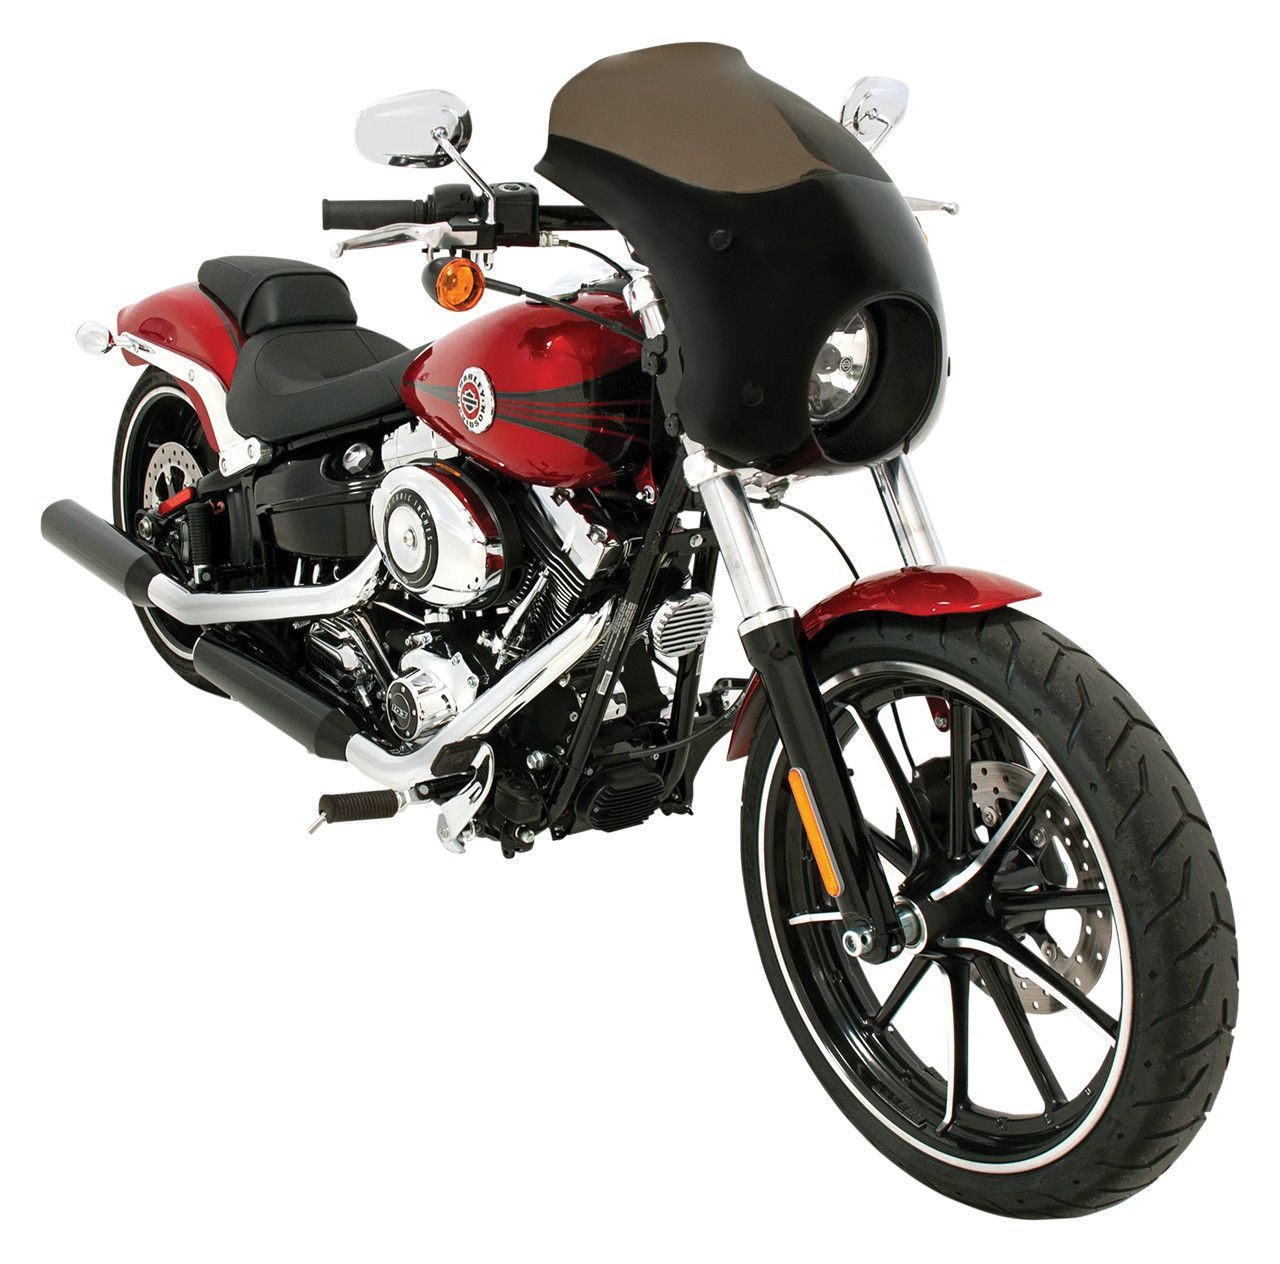 Parts For 2014 Harley Davidson Softail Breakout Fxsb Cycle Gear Touring Throttle By Wire Jumper Harness Heated Grip Wiring Memphis Shades Bullet Fairing 2013 2017